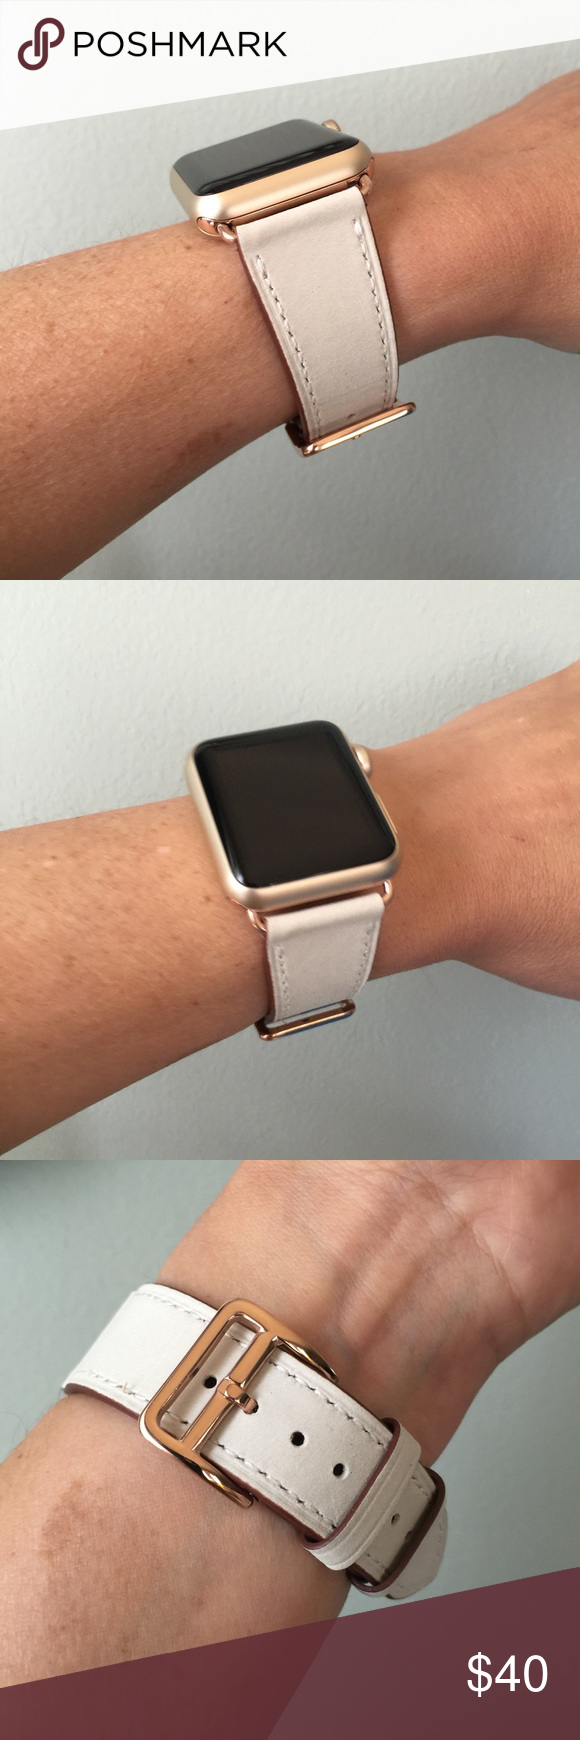 Rose Gold Ivory Leather Apple Watch Band Apple Watch Bands Leather Apple Watch Bands Watch Bands